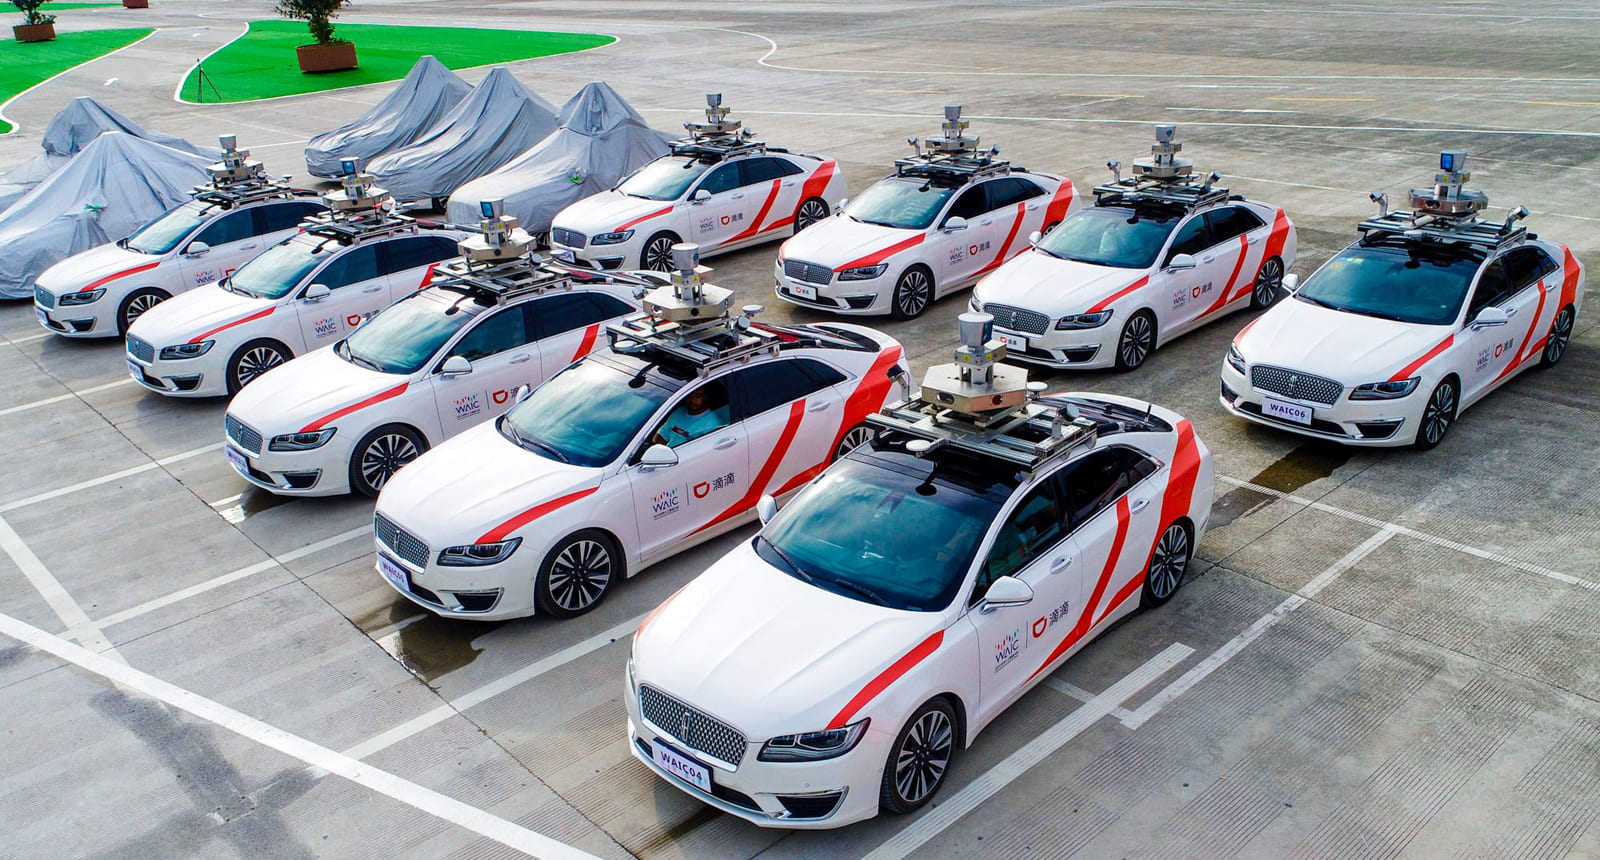 Ridesharing giant Didi Chuxing will offer robotaxi service